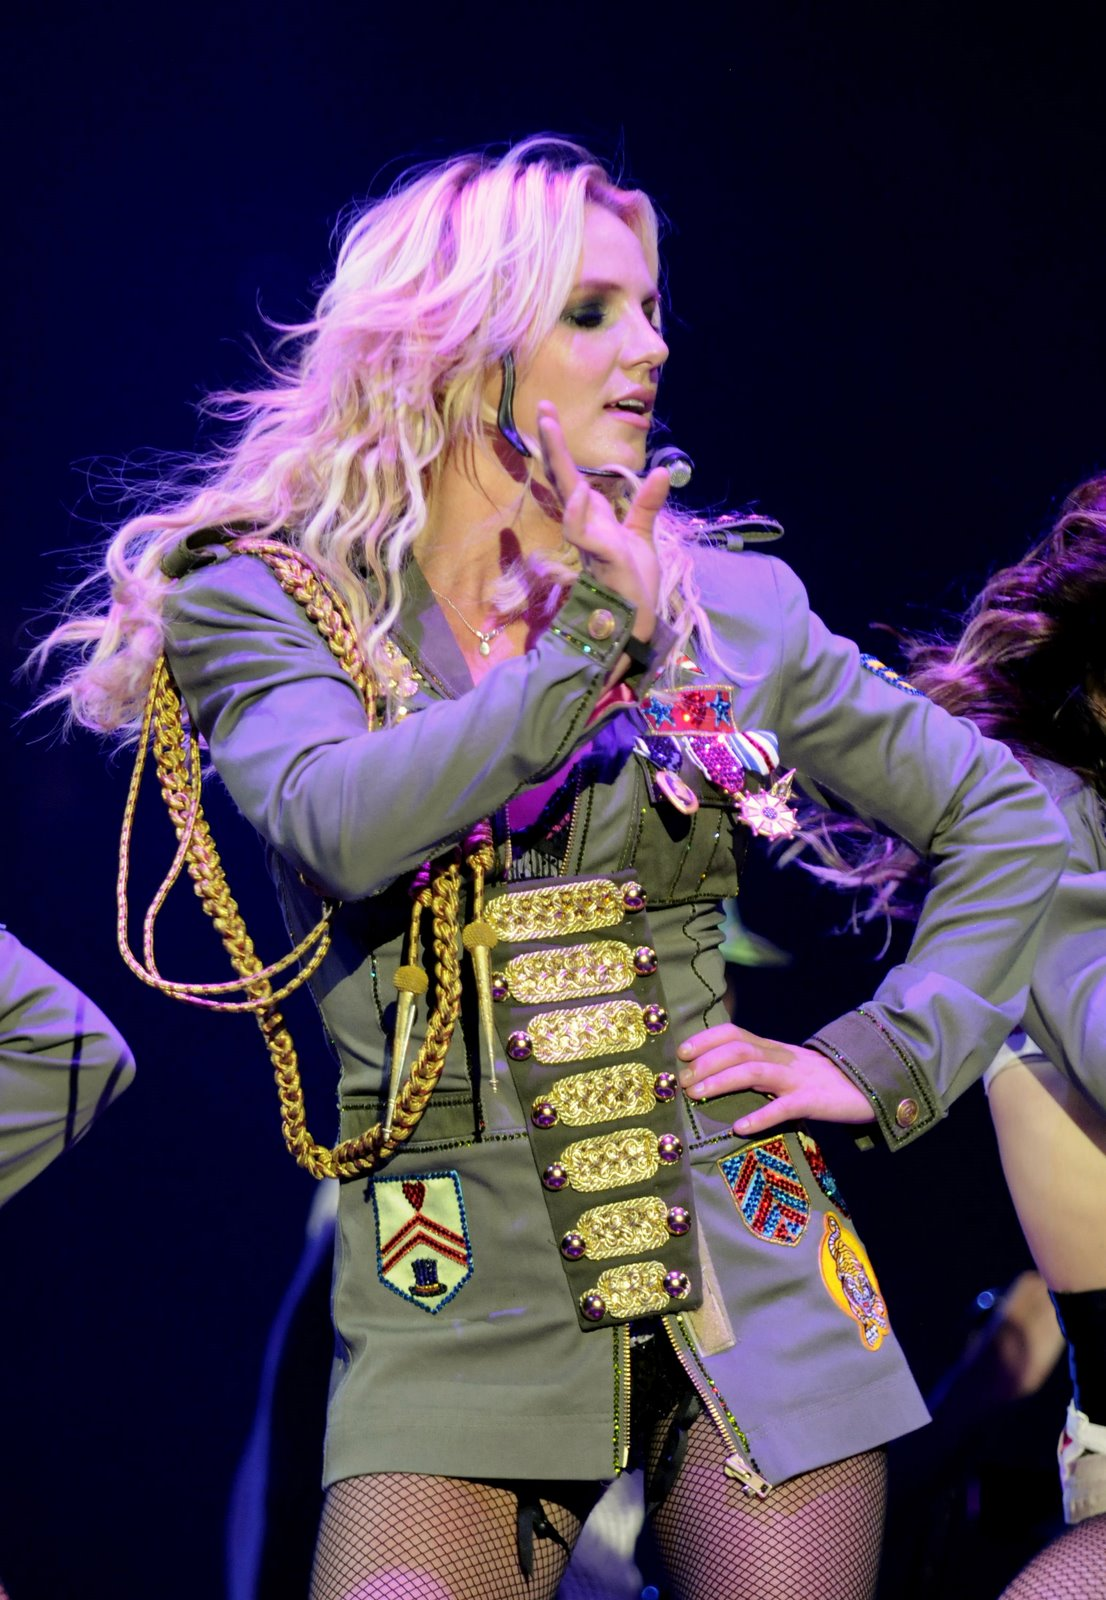 [85663_babayaga_Britney_Spears_The_Circus_Starring_Britney_Spears_Performance_03-03-2009_046_123_880lo.jpg]